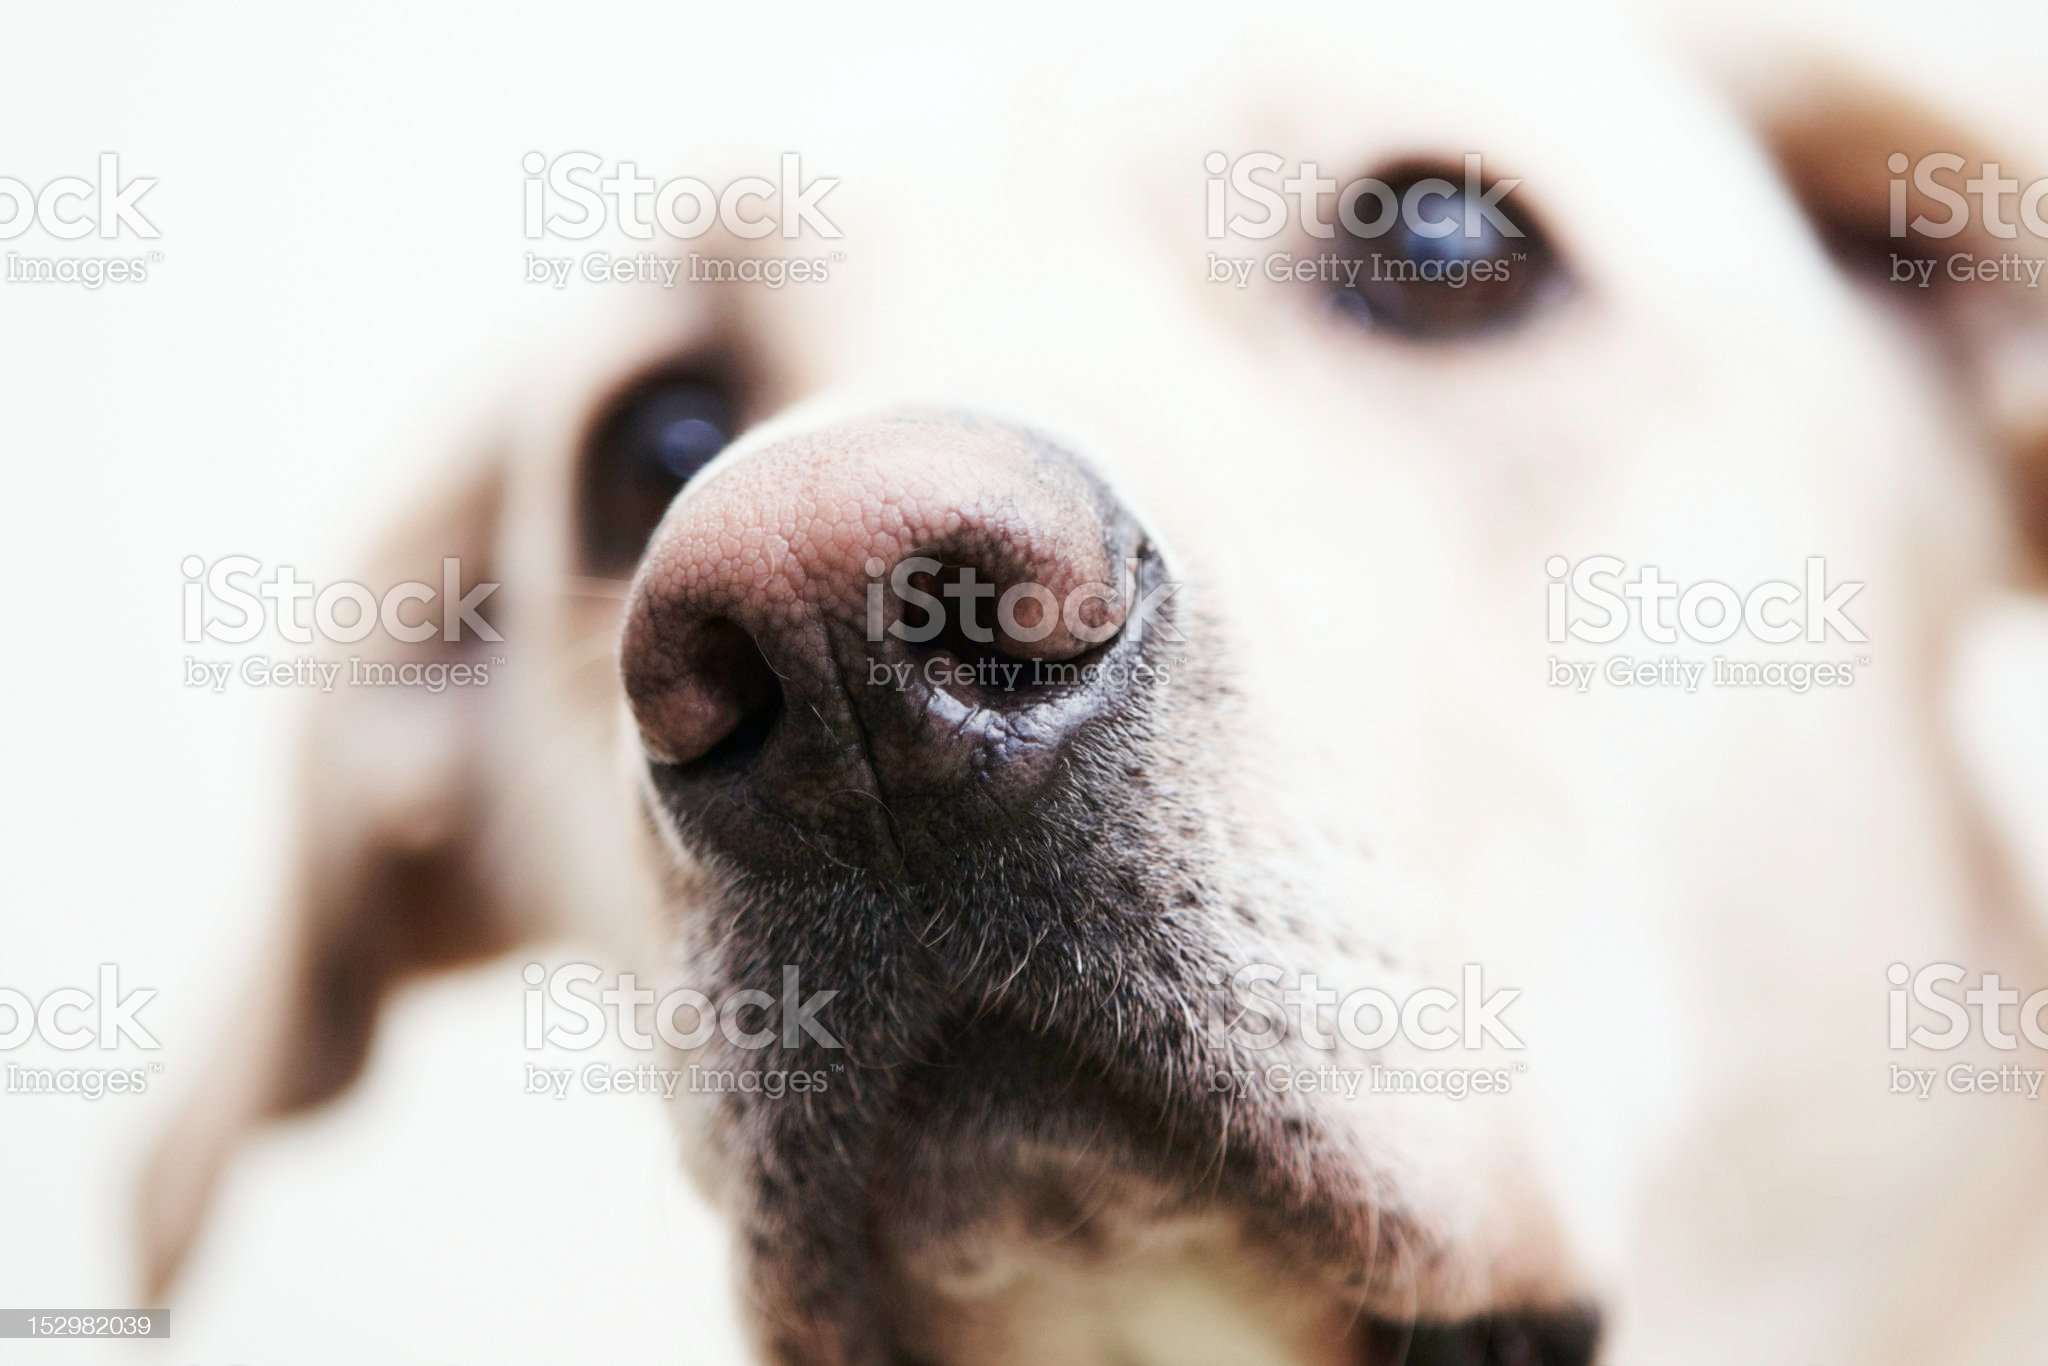 Snout royalty-free stock photo